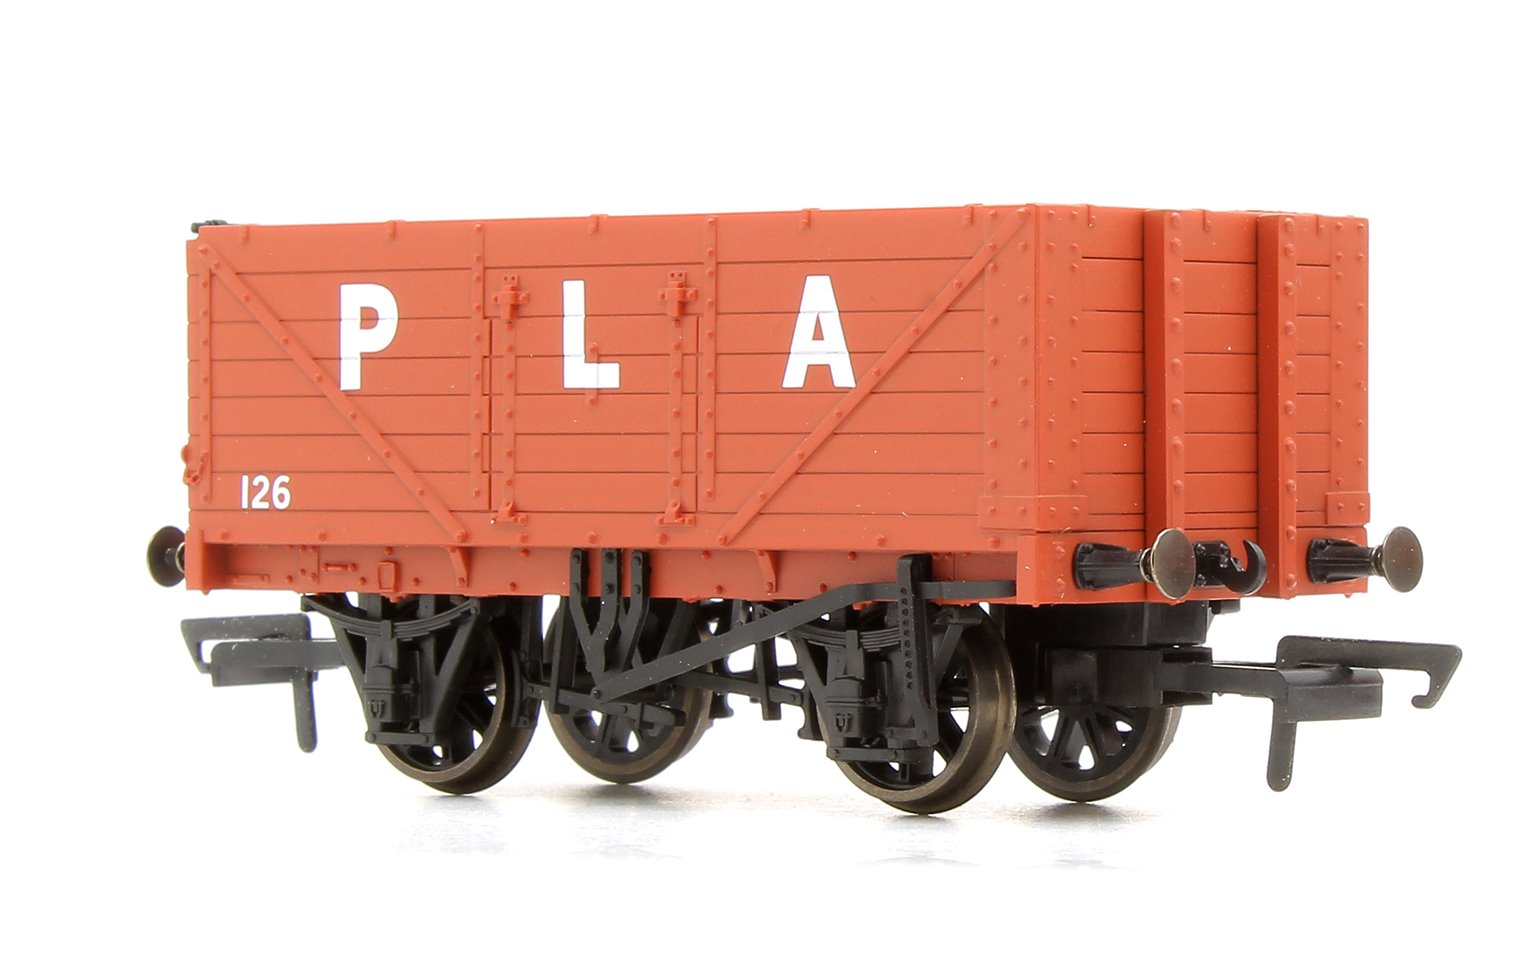 Golden Valley GV6015 3 pack PLA 7 plank open mineral wagon